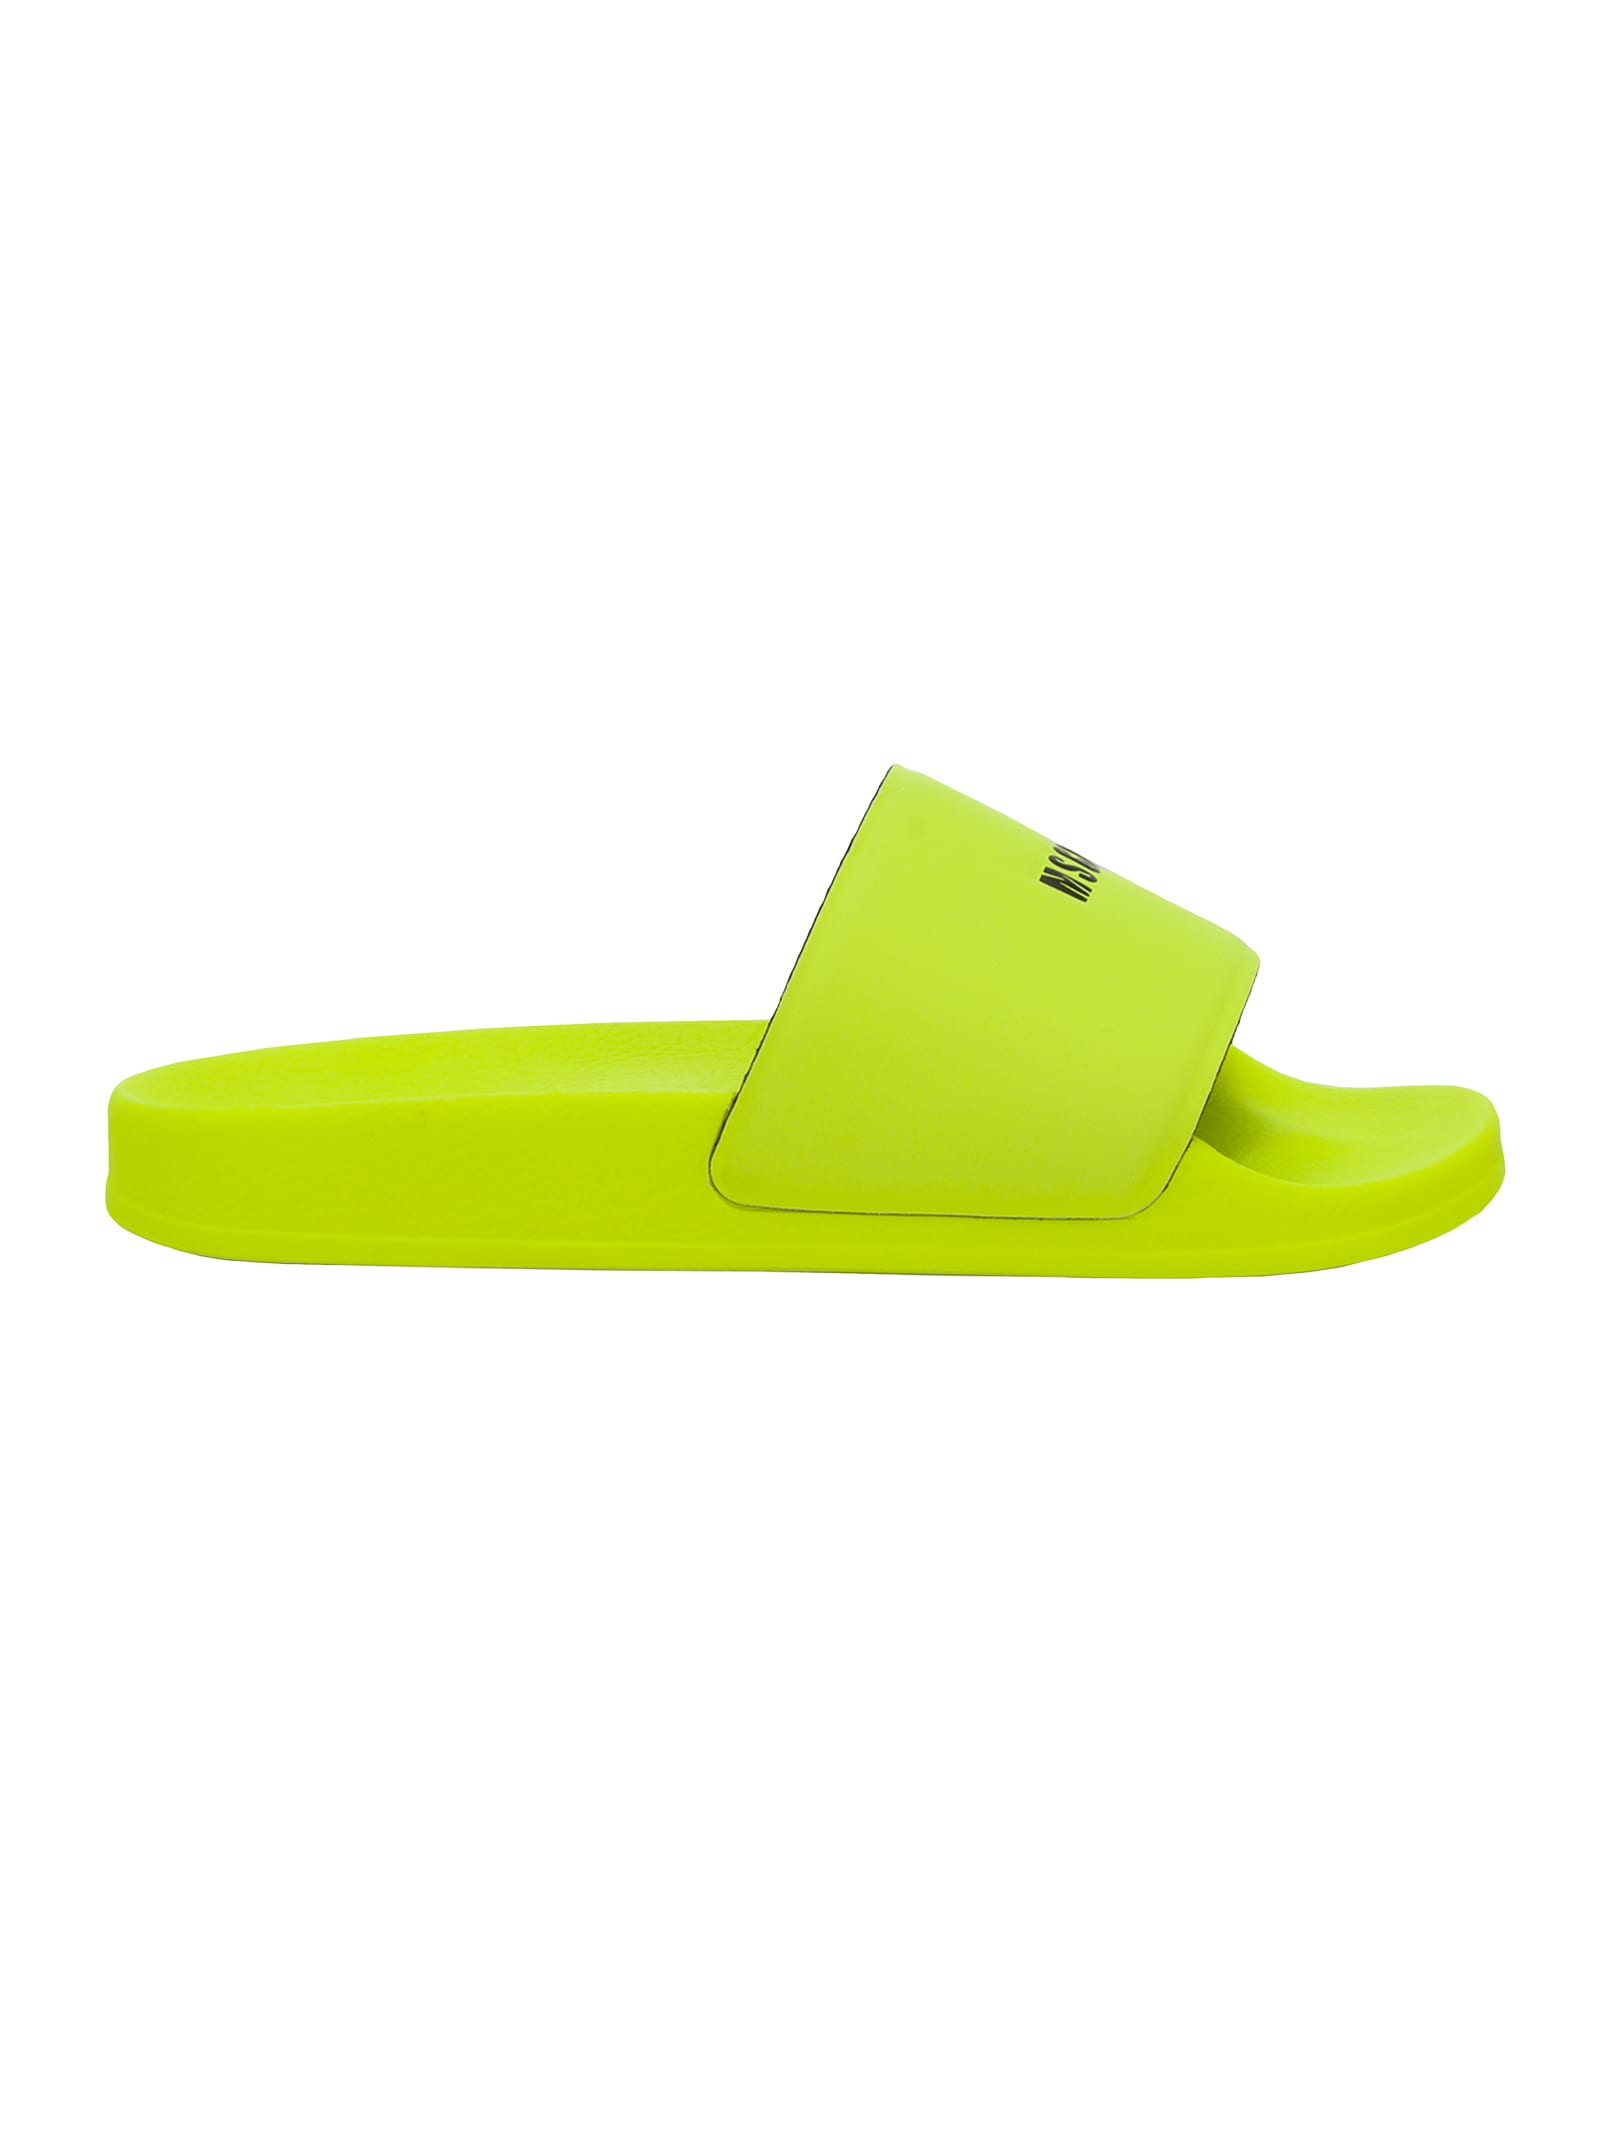 Msgm MSGM RUBBER SLIDERS WITH MICRO LOGO